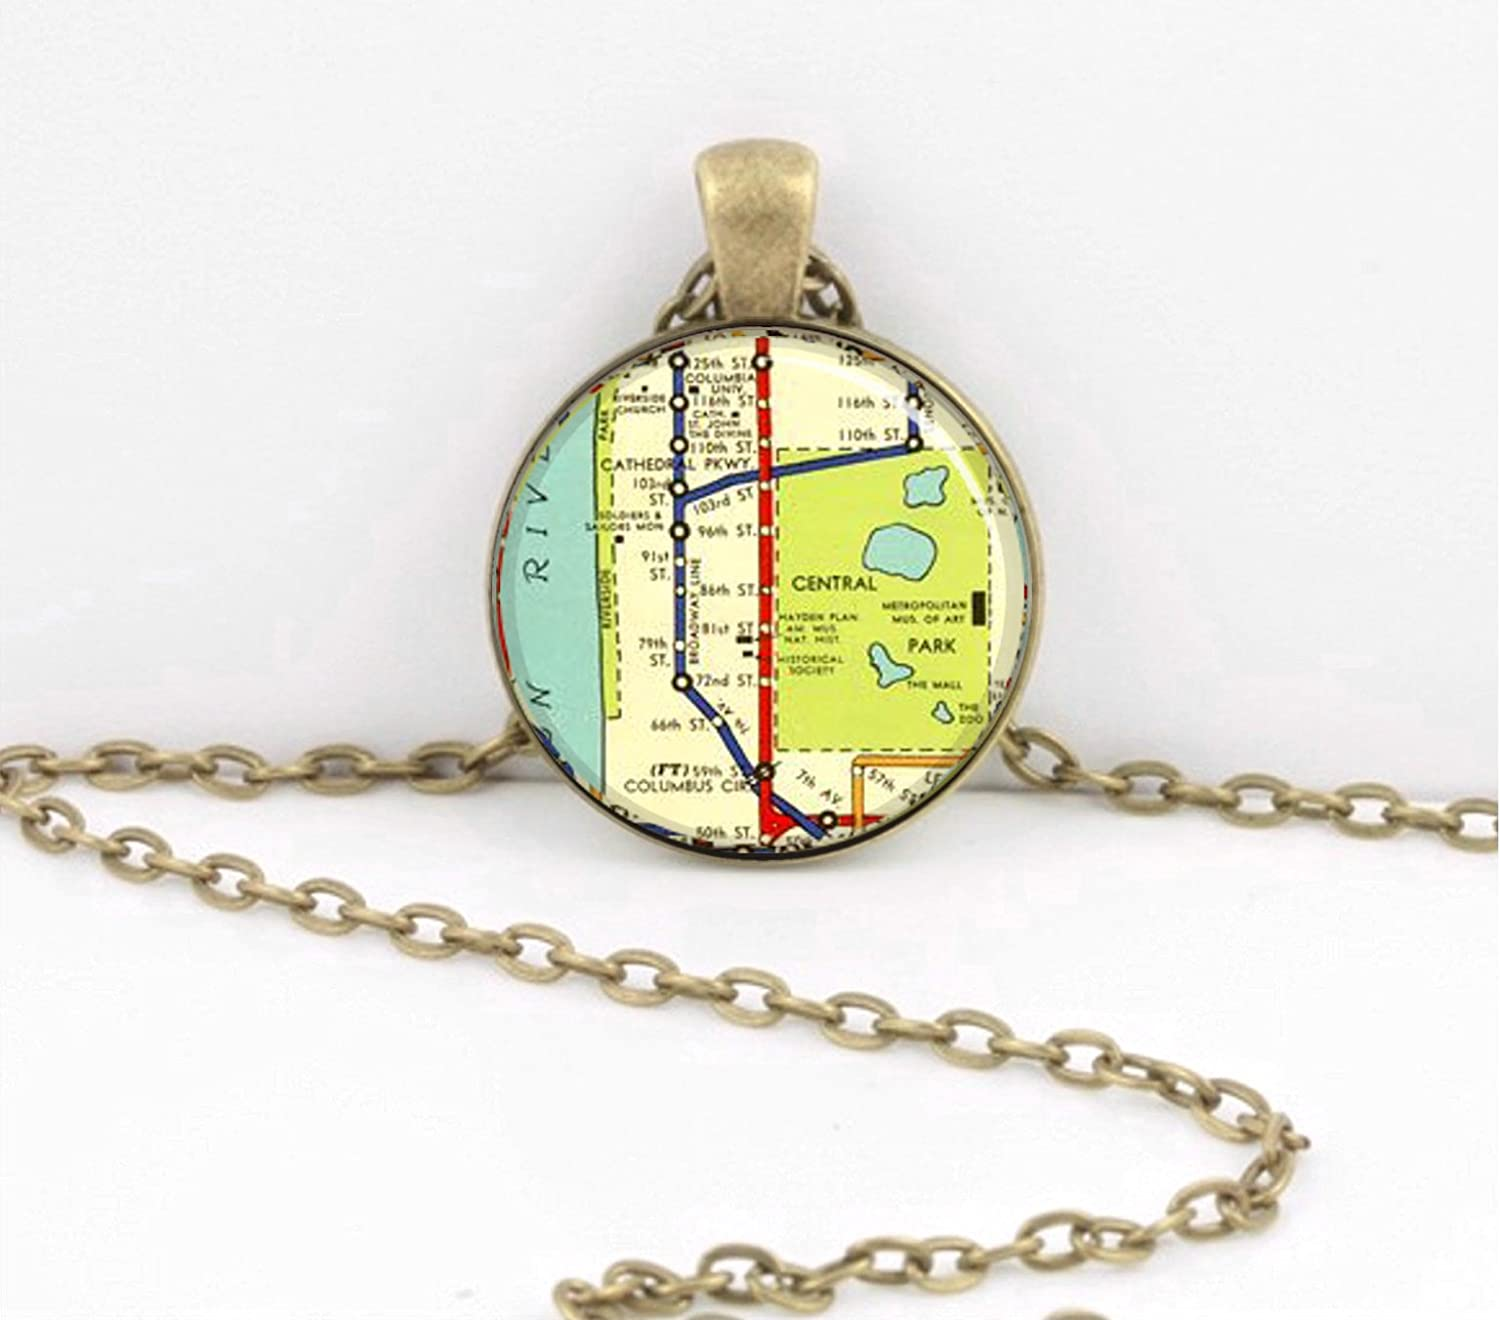 Nyc Subway Map Key.Manhattan New York Upper West Side Nyc Vintage Subway Map Vintage Map Pendant Necklace Key Ring Travel Gift Jewelry